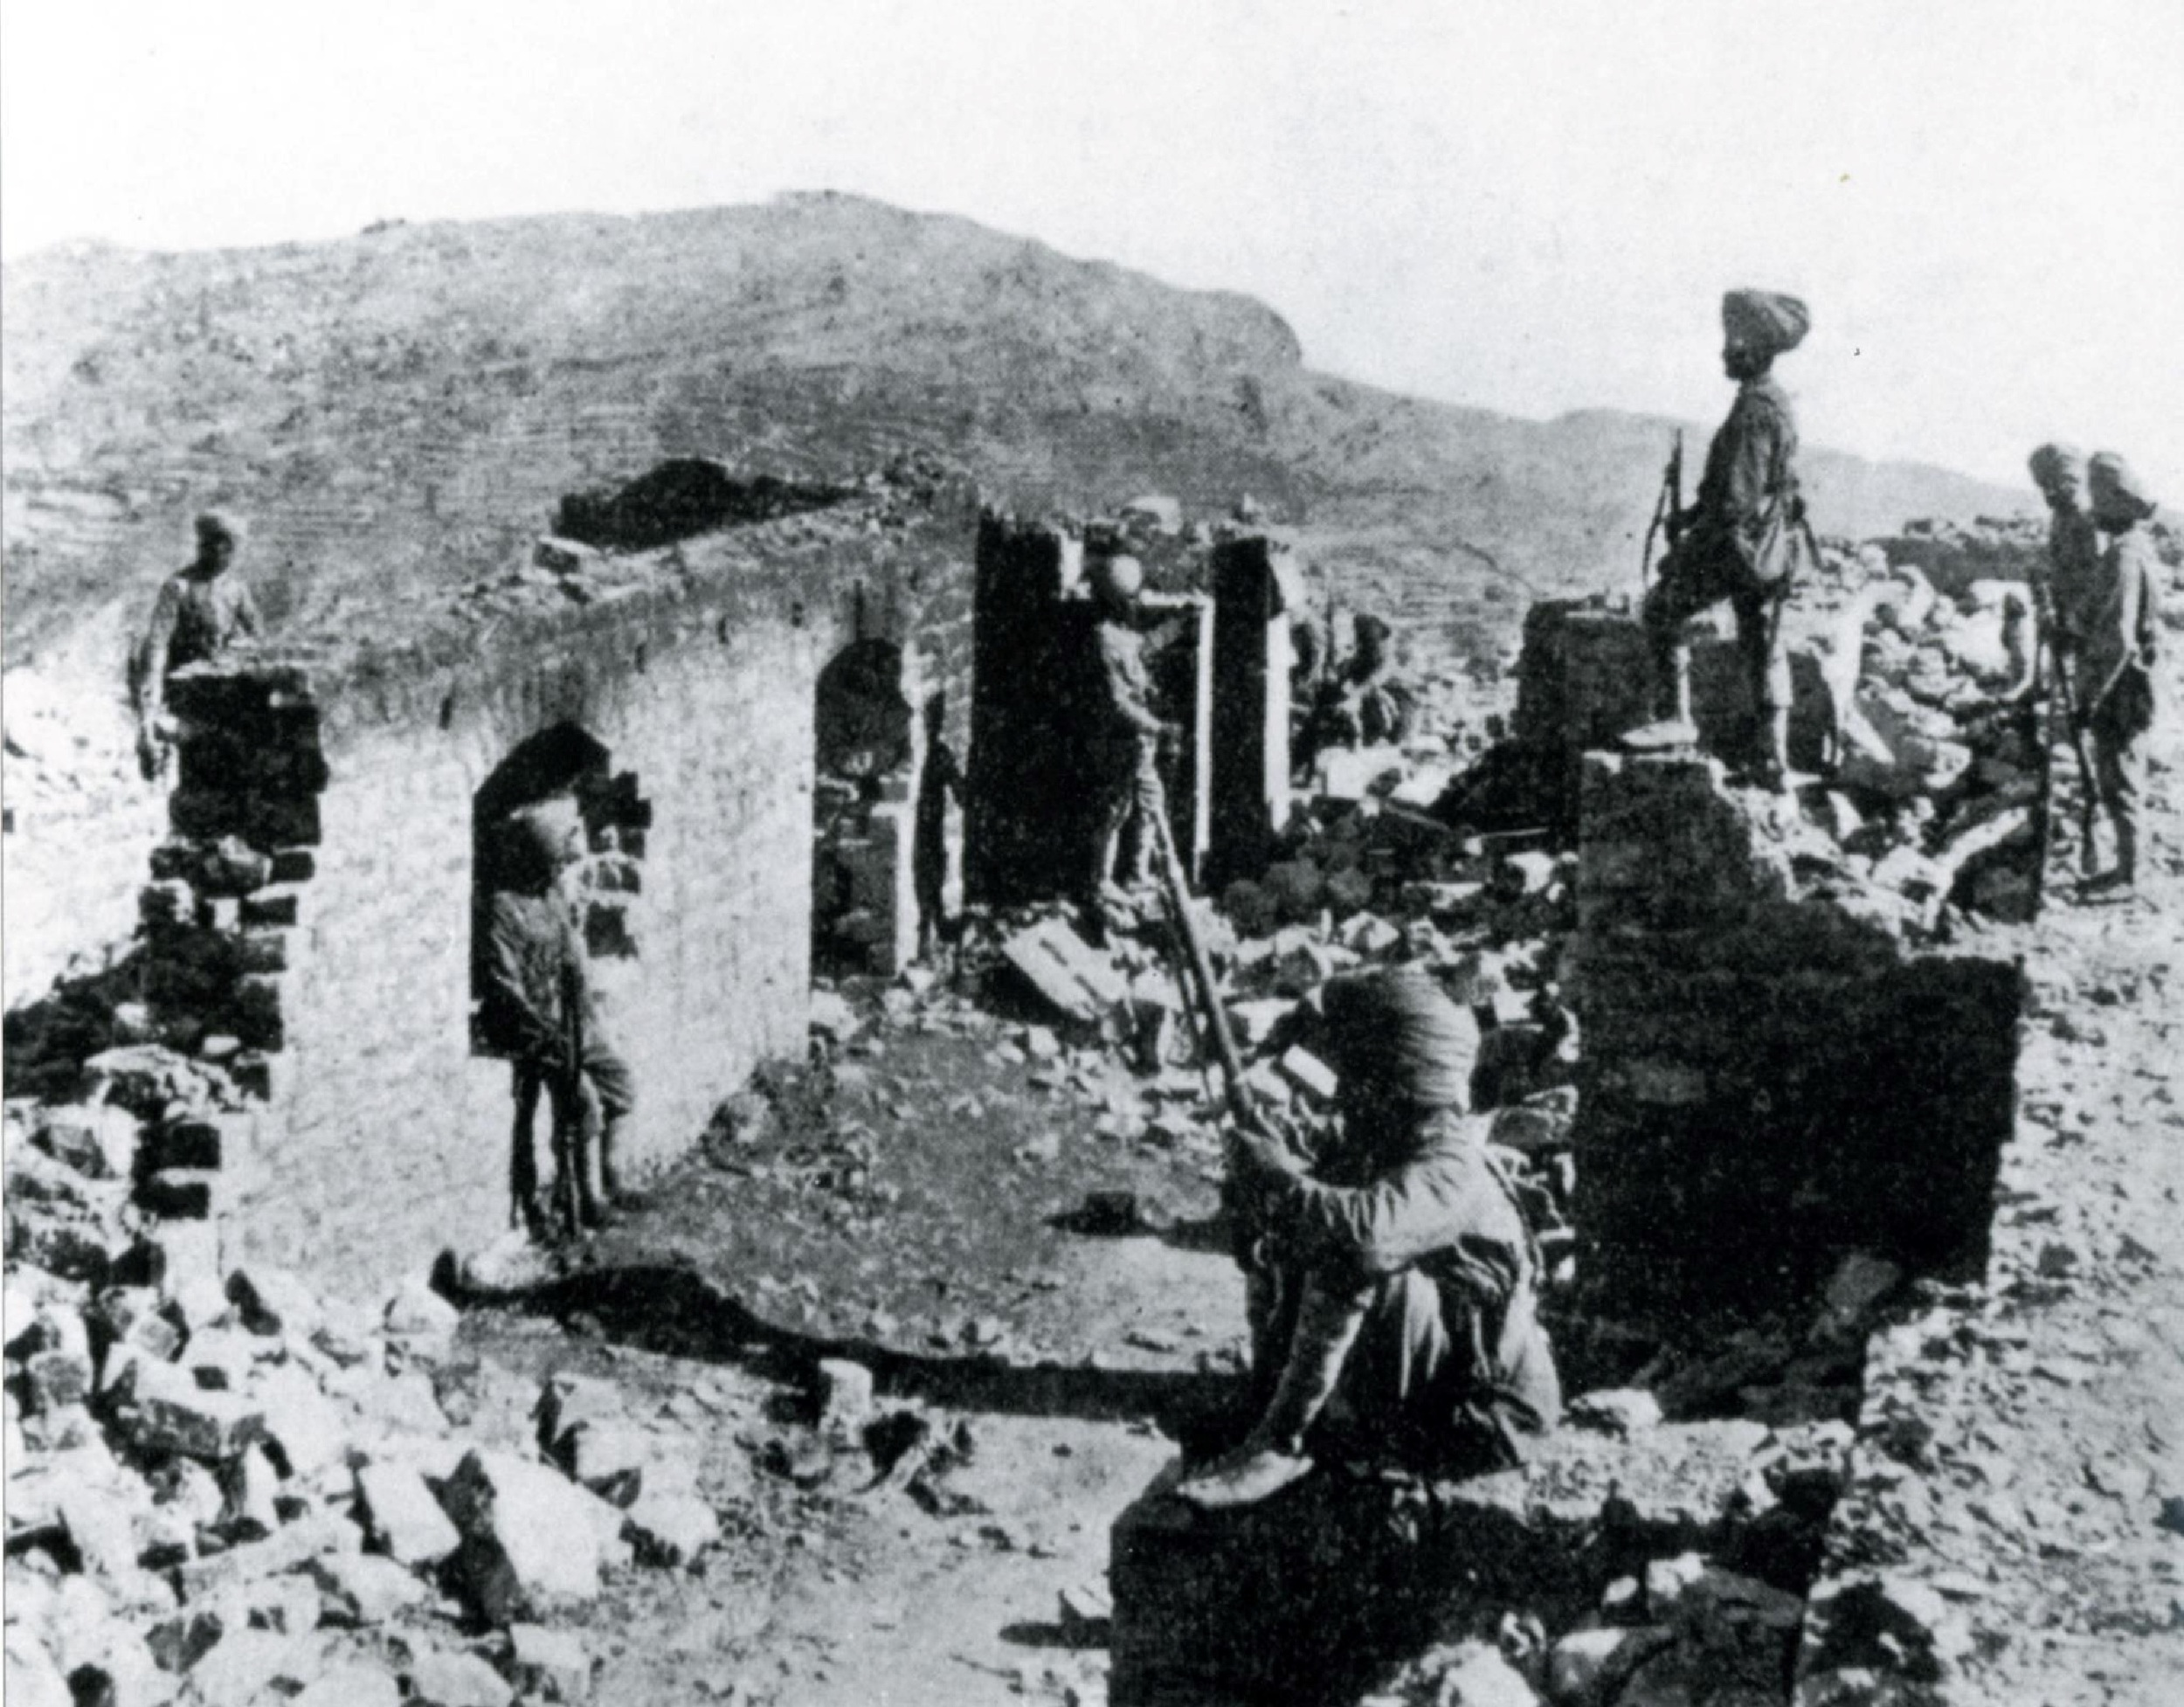 Without the stiff resistance of the 21 Sikh soldiers at Saragarhi both Fort Lockhart and Fort Gulistan would have easily fallen to the enemy. By defending their position long enough for the relief column to arrive with artillery support, the 21 Sikh soldiers became the crucial factor in turning the tide of battle in their  favour. When the relief column arrived a day later, they saw the burnt out bodies of all the 21 Sikh soldiers, together with at least 800 dead bodies of the tribesmen strewn only yards in front of their position.